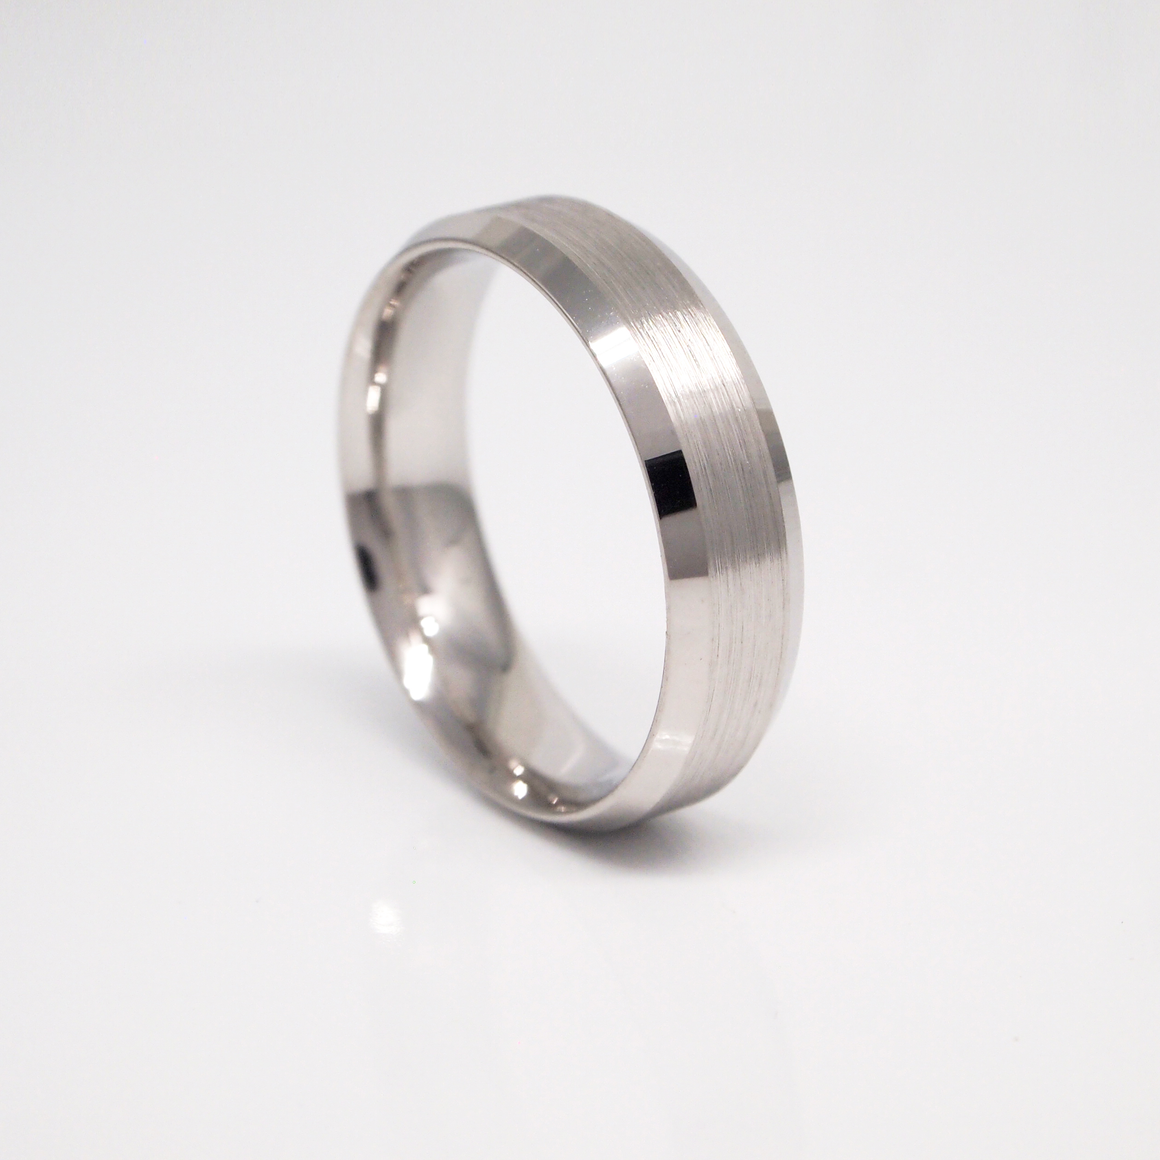 14K white gold 6mm men's wedding band featured a brushed finish center and bright beveled sides.